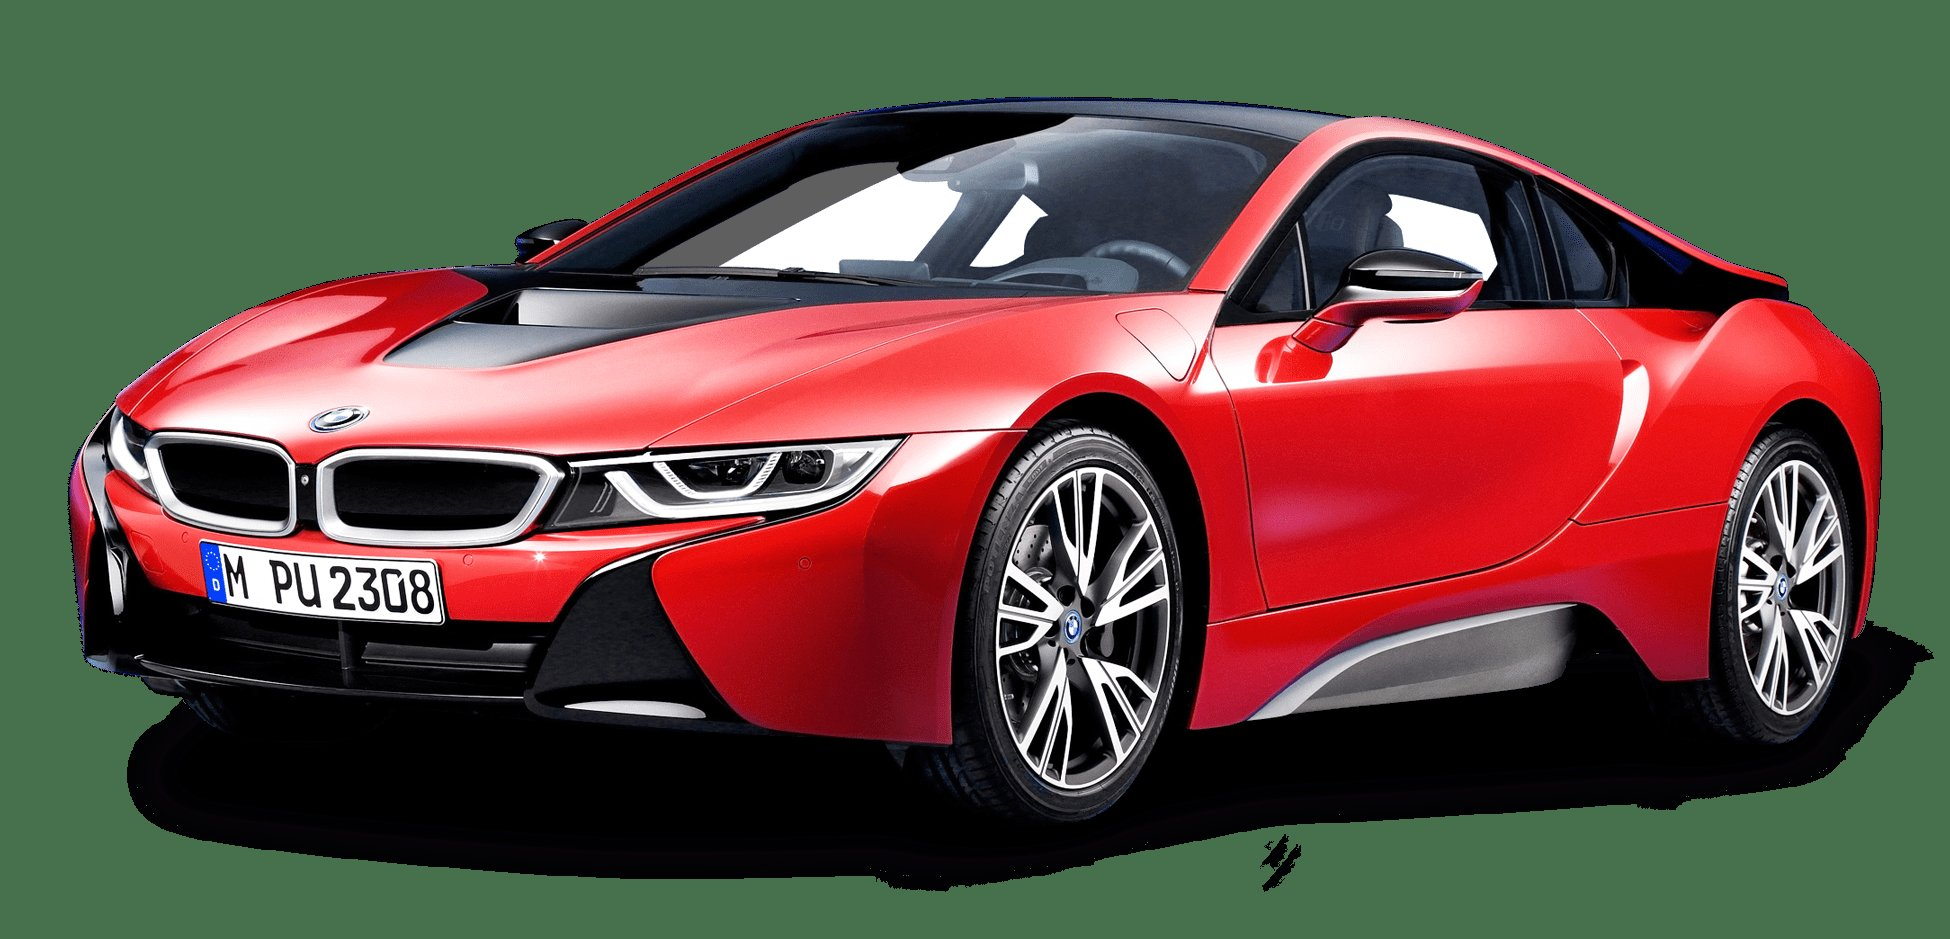 Latest Bmw I8 Protonic Red Car Png Image Pngpix Free Download